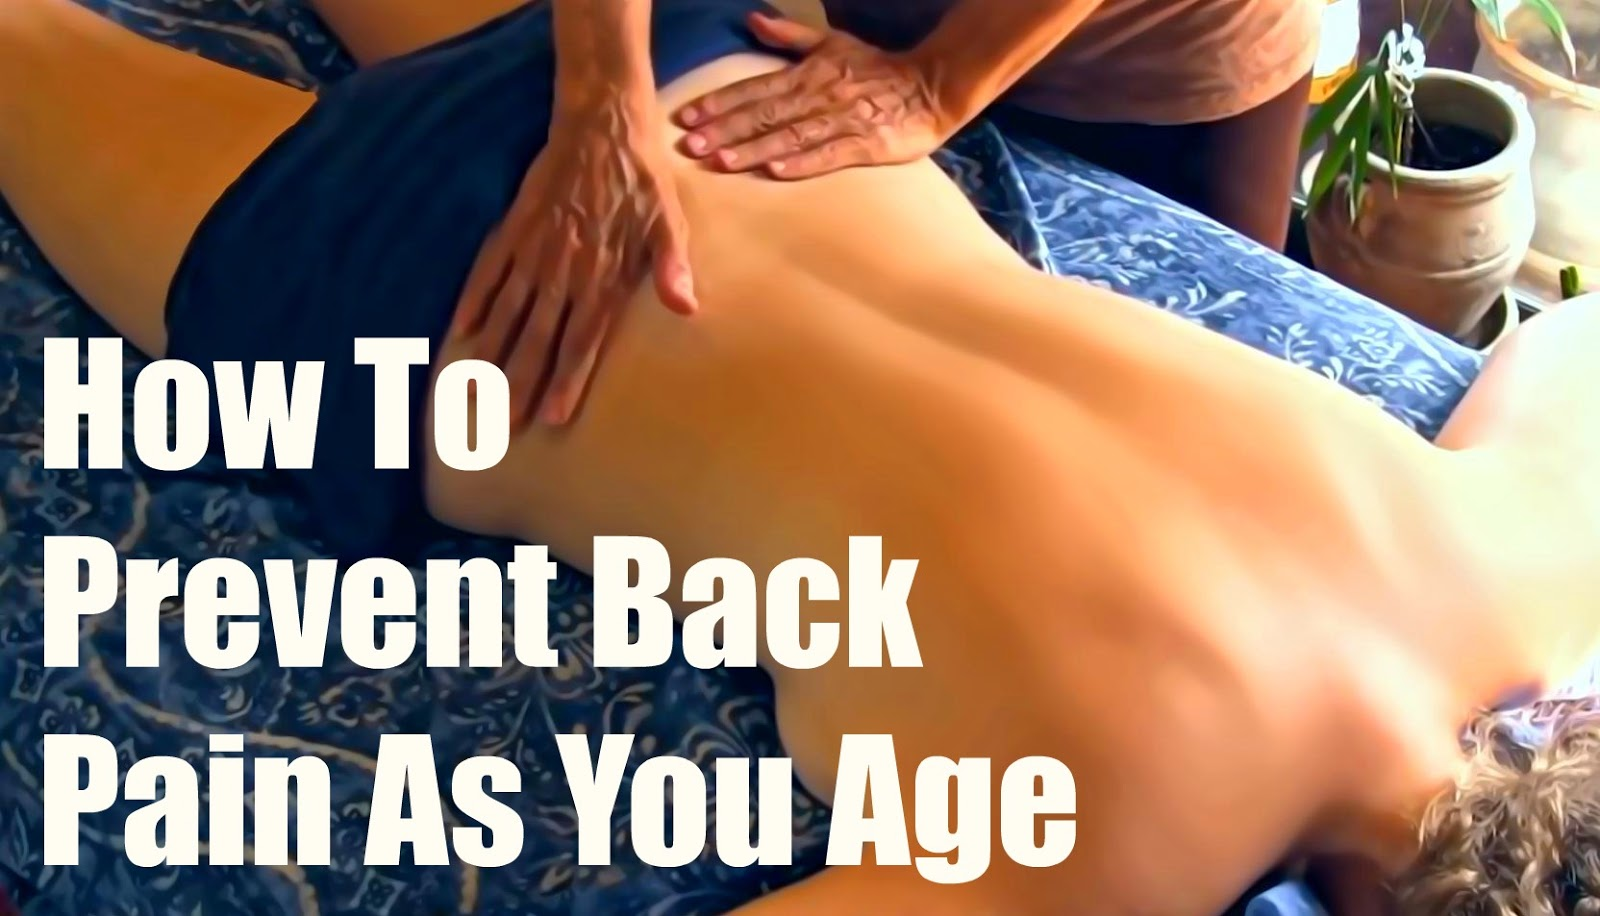 How To Prevent Back Pain As You Age